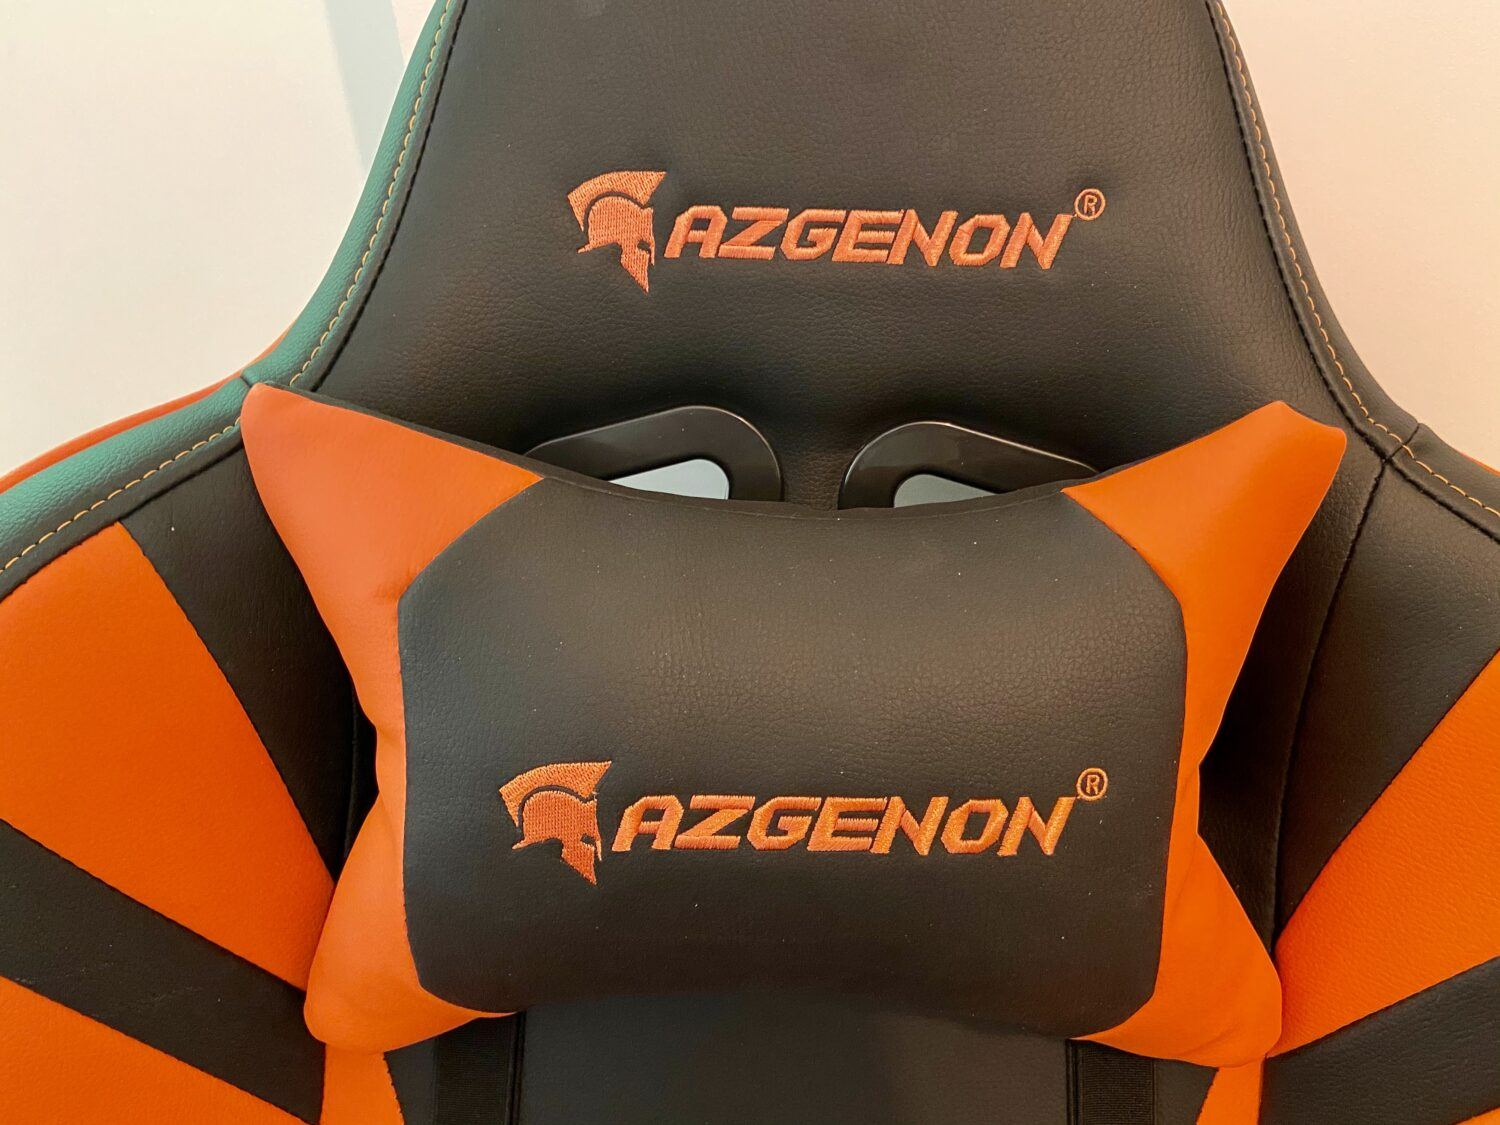 AZGENON Z300 test chaise gaming coussin nuque